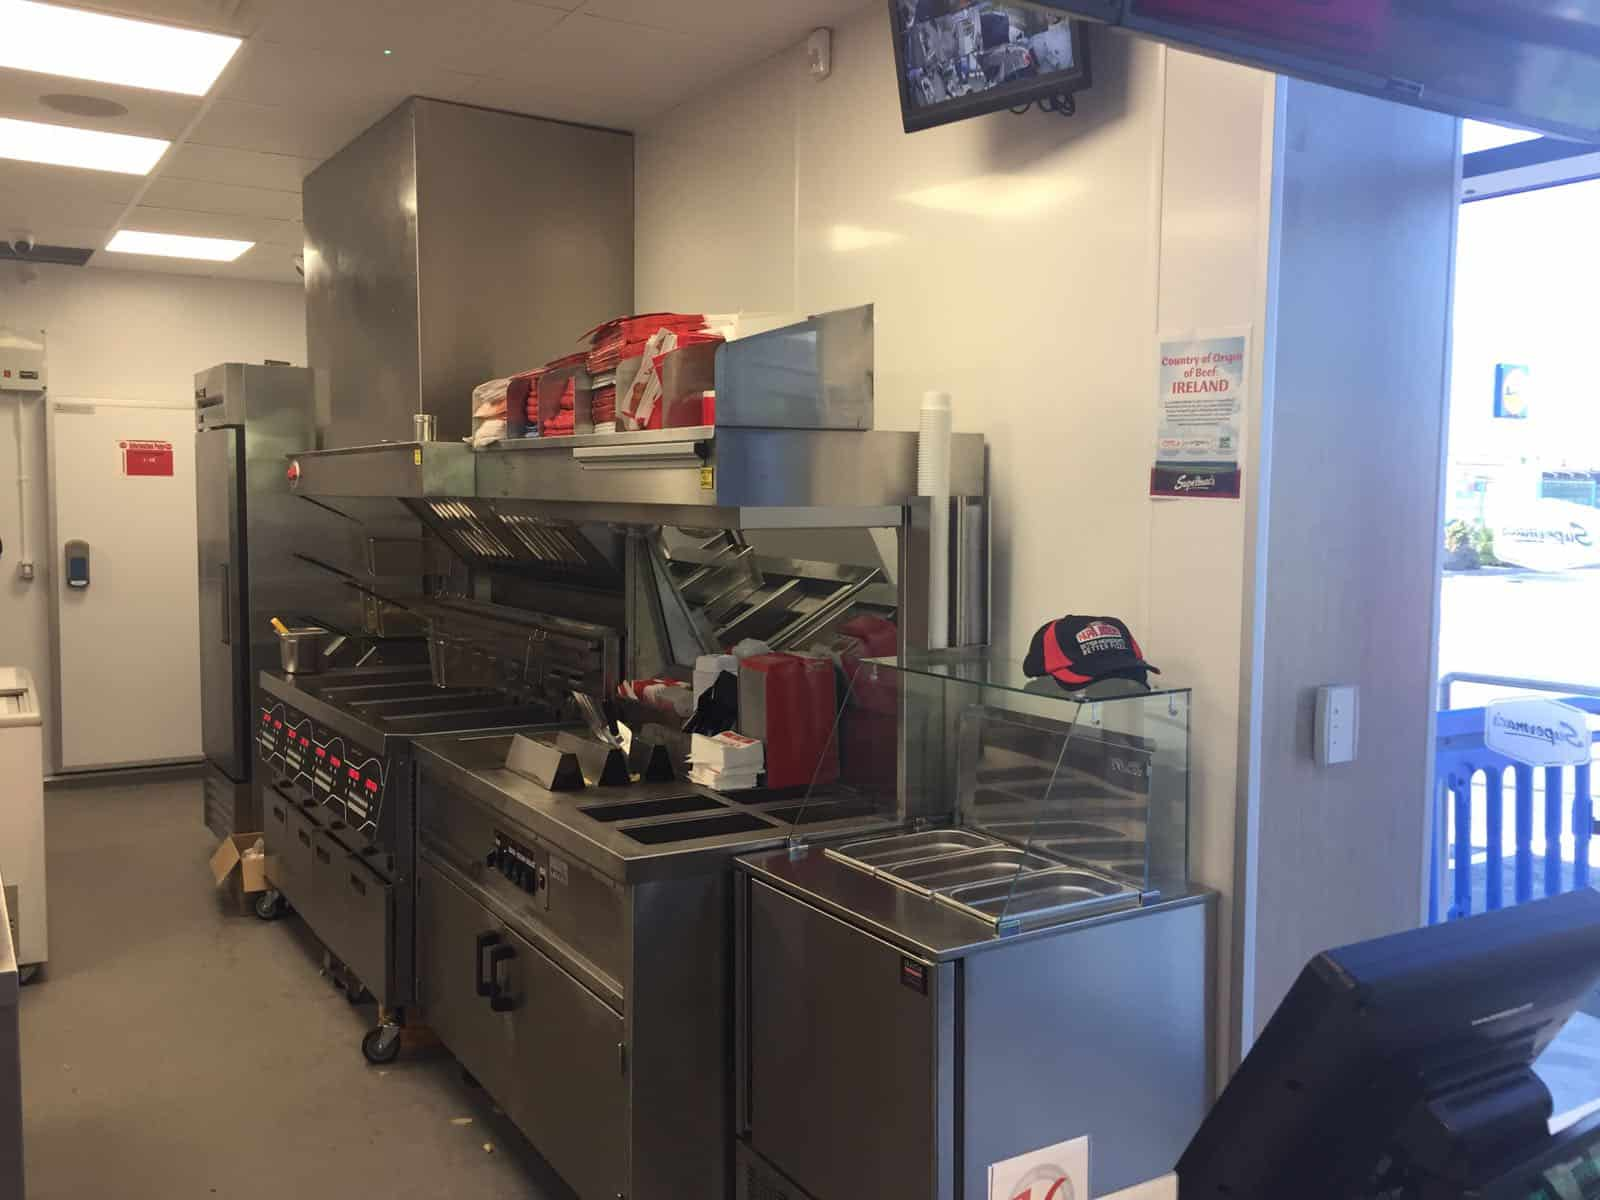 Martin Food Equipment cdb47743-3937-45cd-b957-2beed328ddfb Recent Installation at Supermacs Clarehall Dublin News